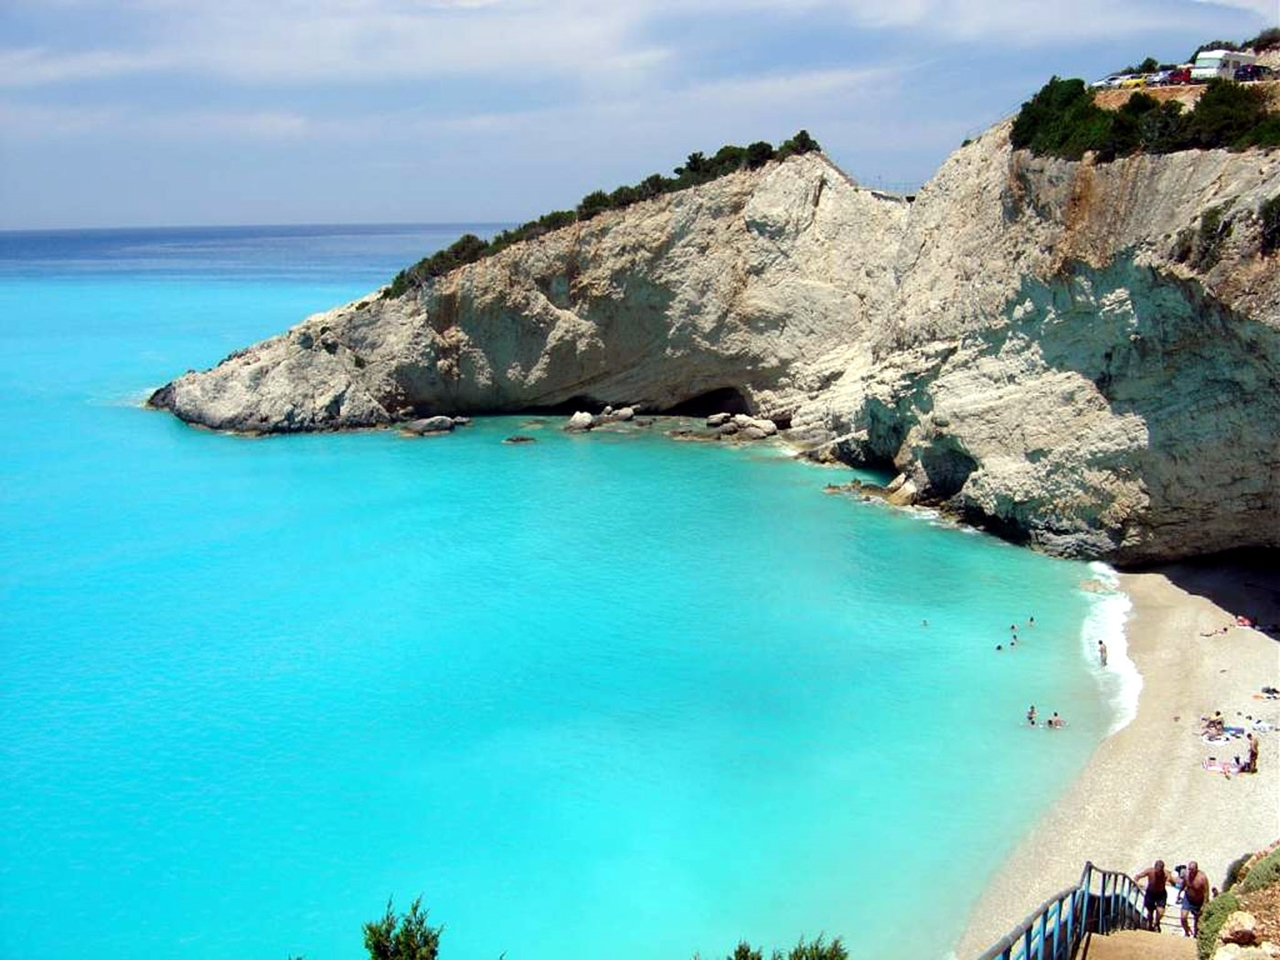 Picturesque beaches of the Greek island of Lefkada 02